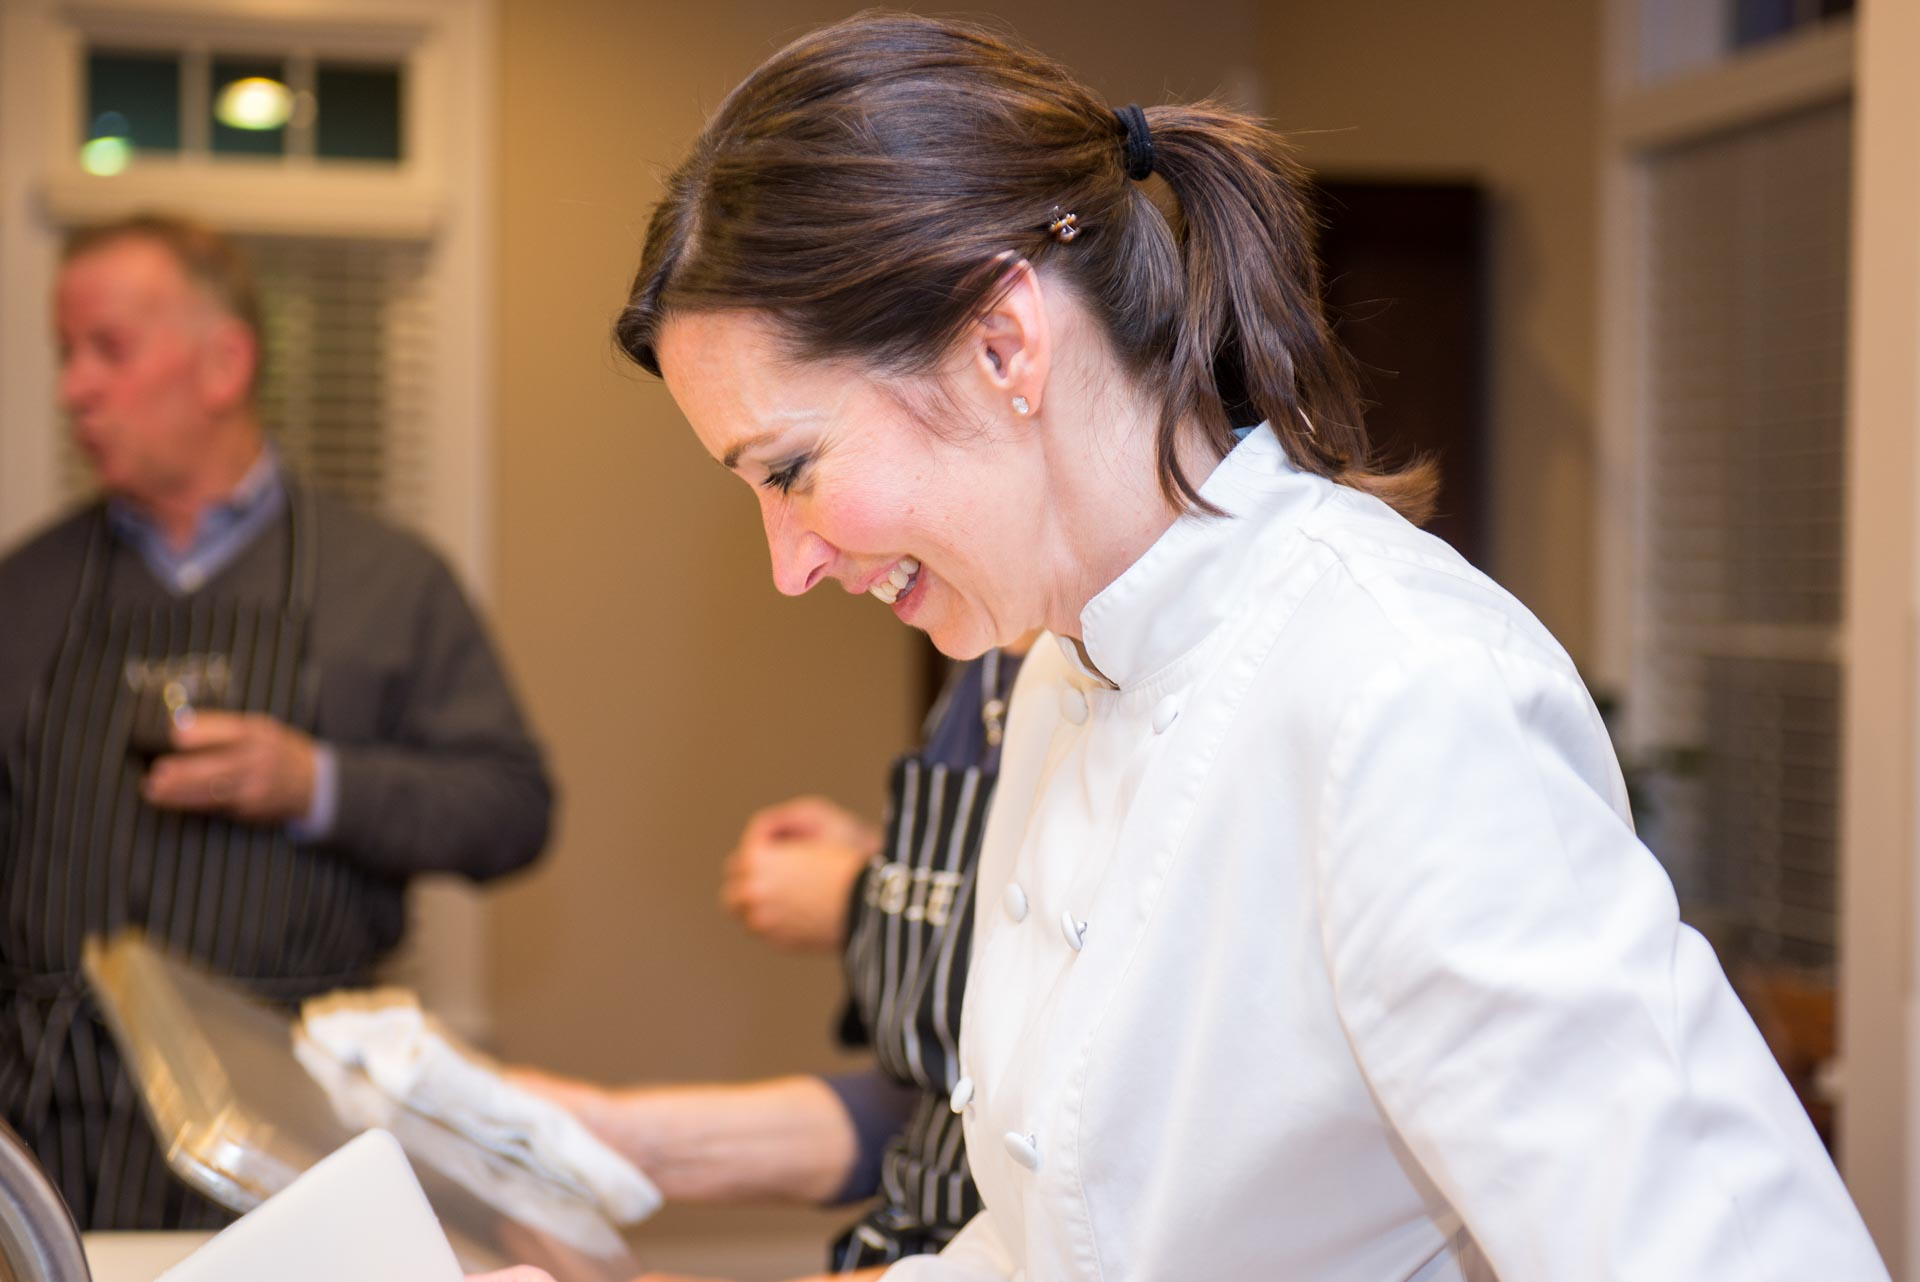 Chef Melissa Wieczorek, Owner of Zest Culinary Services